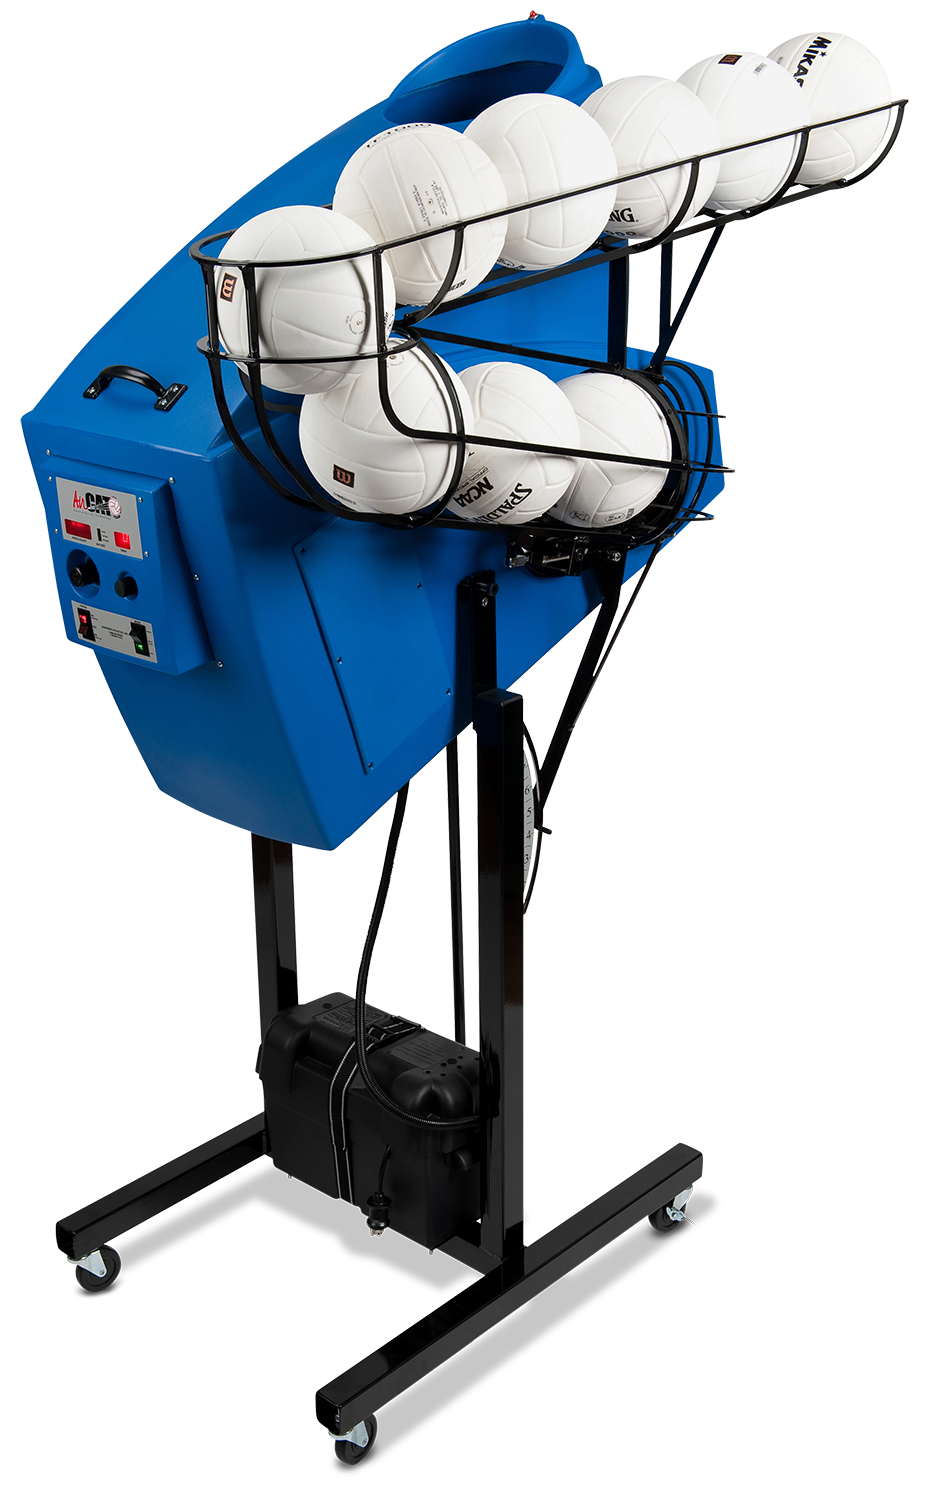 AirCAT Volleyball Drill Machine